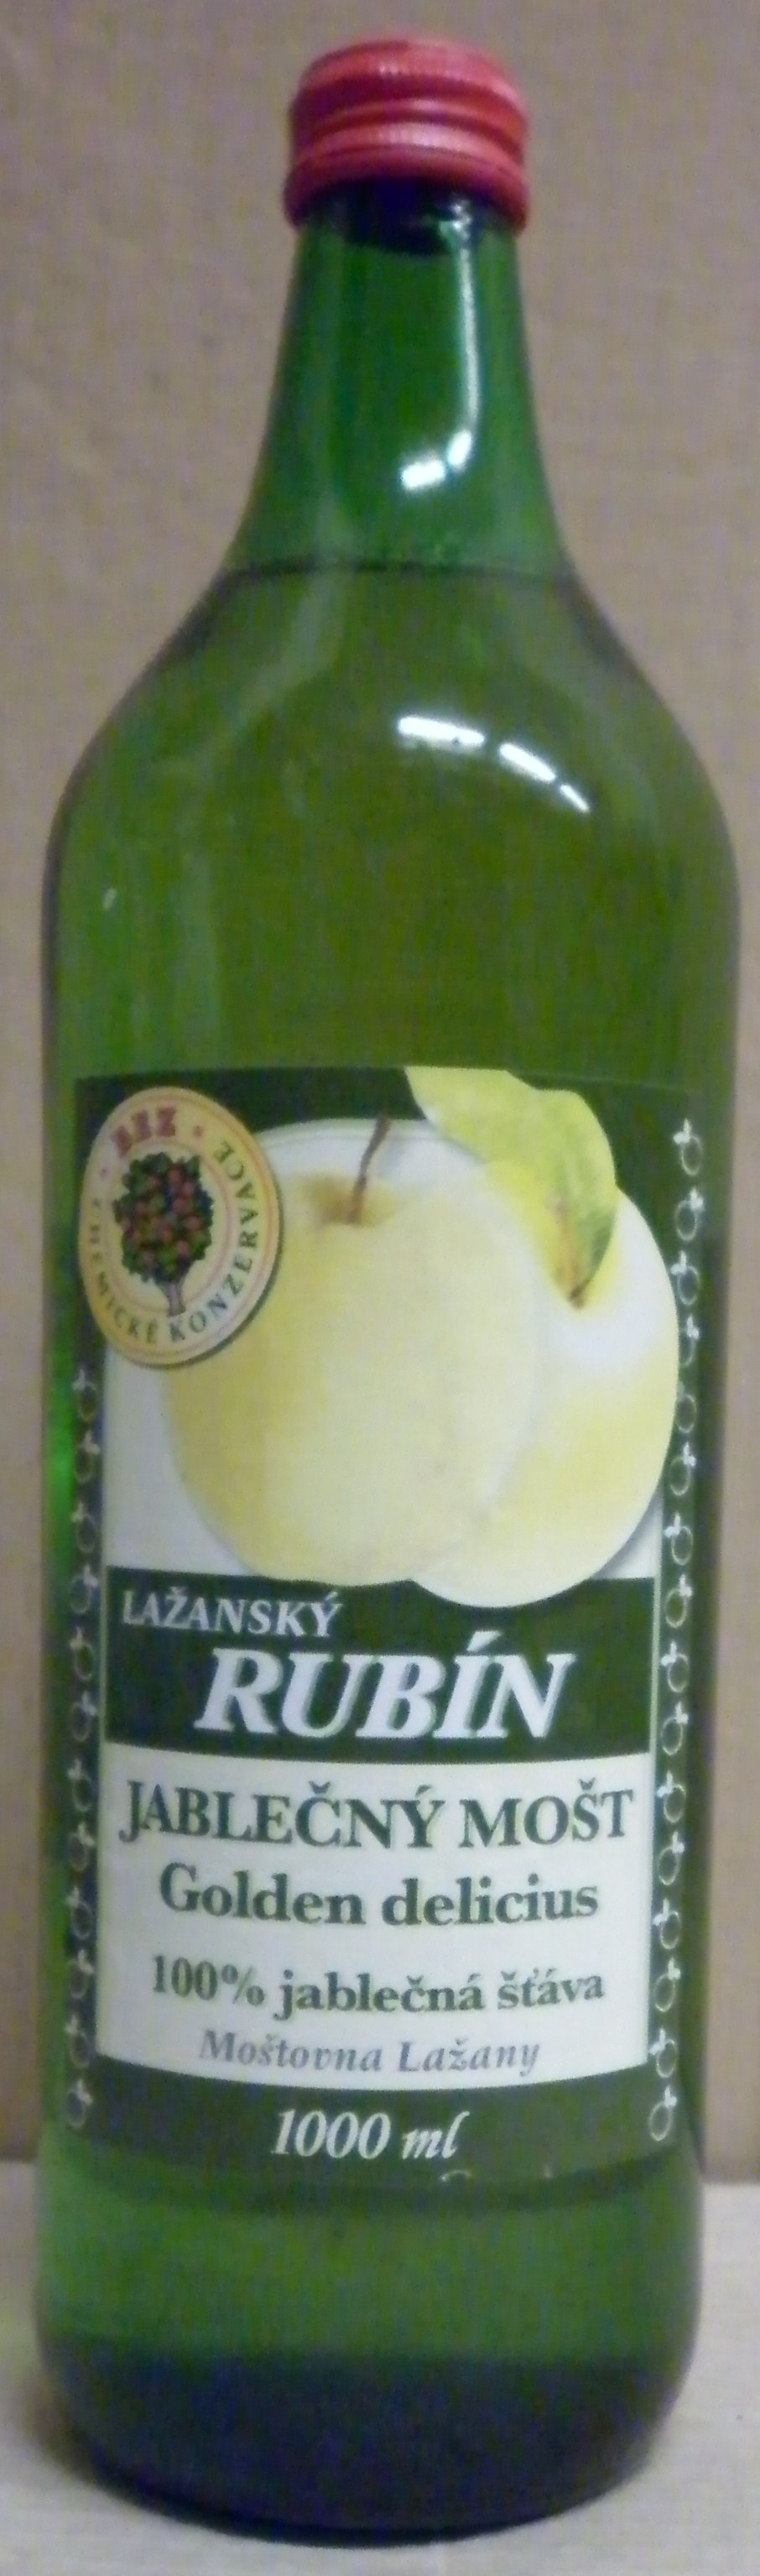 Jablečný mošt GOLDEN DELICIOUS 100% (6 ks)